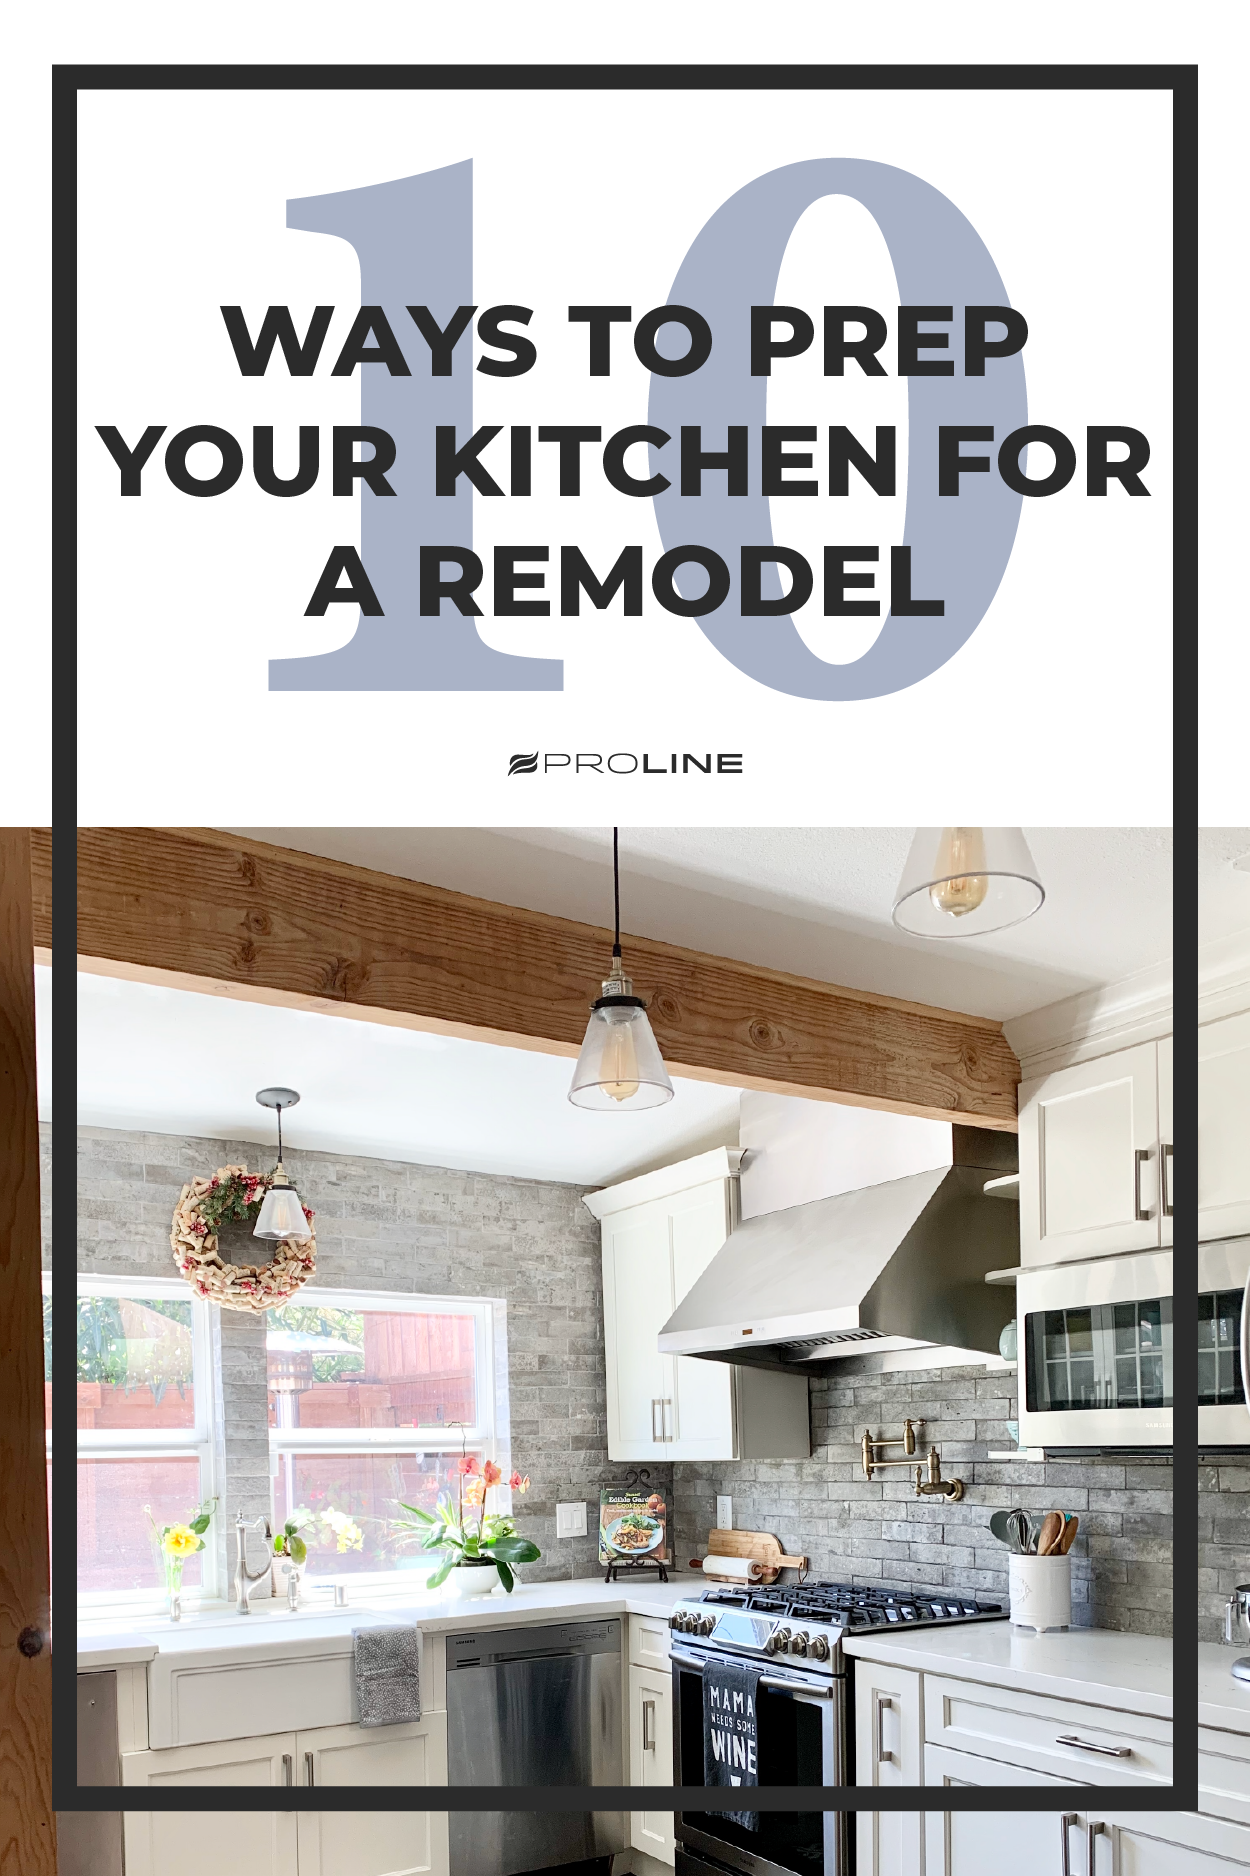 How To Pack Up A Kitchen For Remodel In 10 Steps Kitchen Remodel Small Kitchen Inspirations Remodel